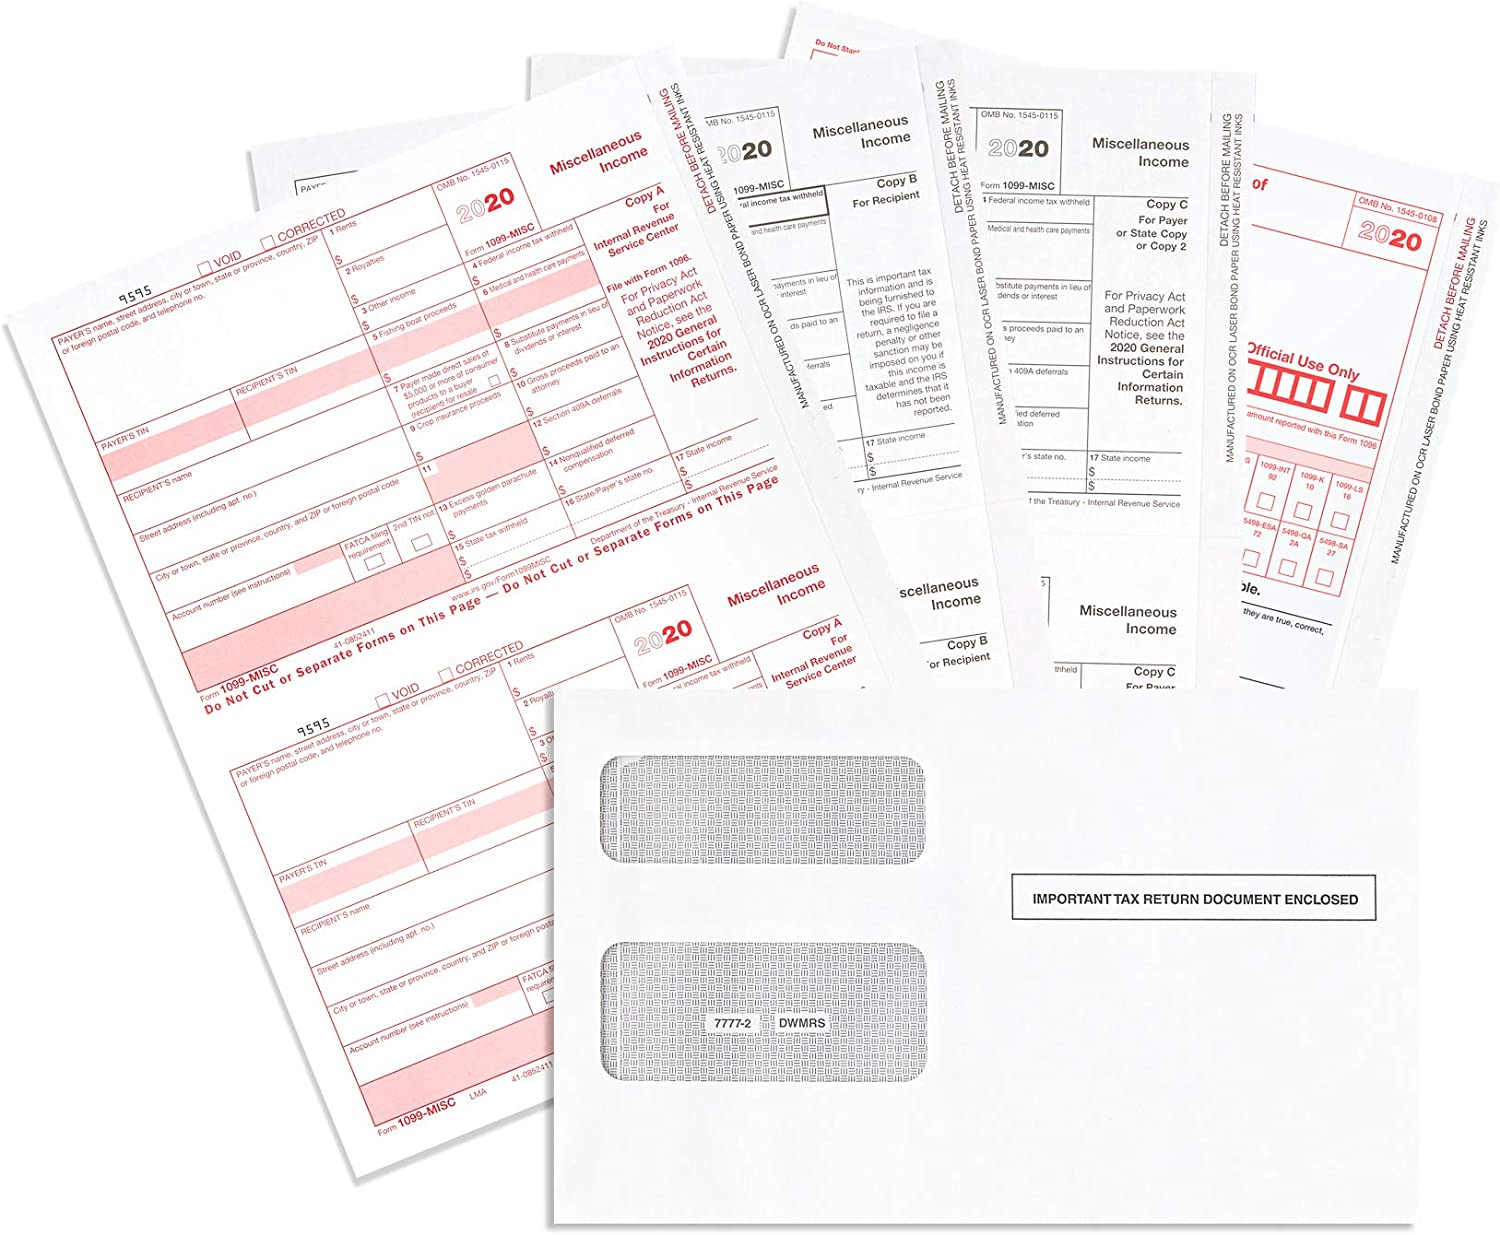 1099 MISC Forms 2020, 4 Part Tax Forms Kit, 50 Vendor Kit of Laser Forms, Compatible with QuickBooks and Accounting Software, 50 Self Seal Envelopes Included